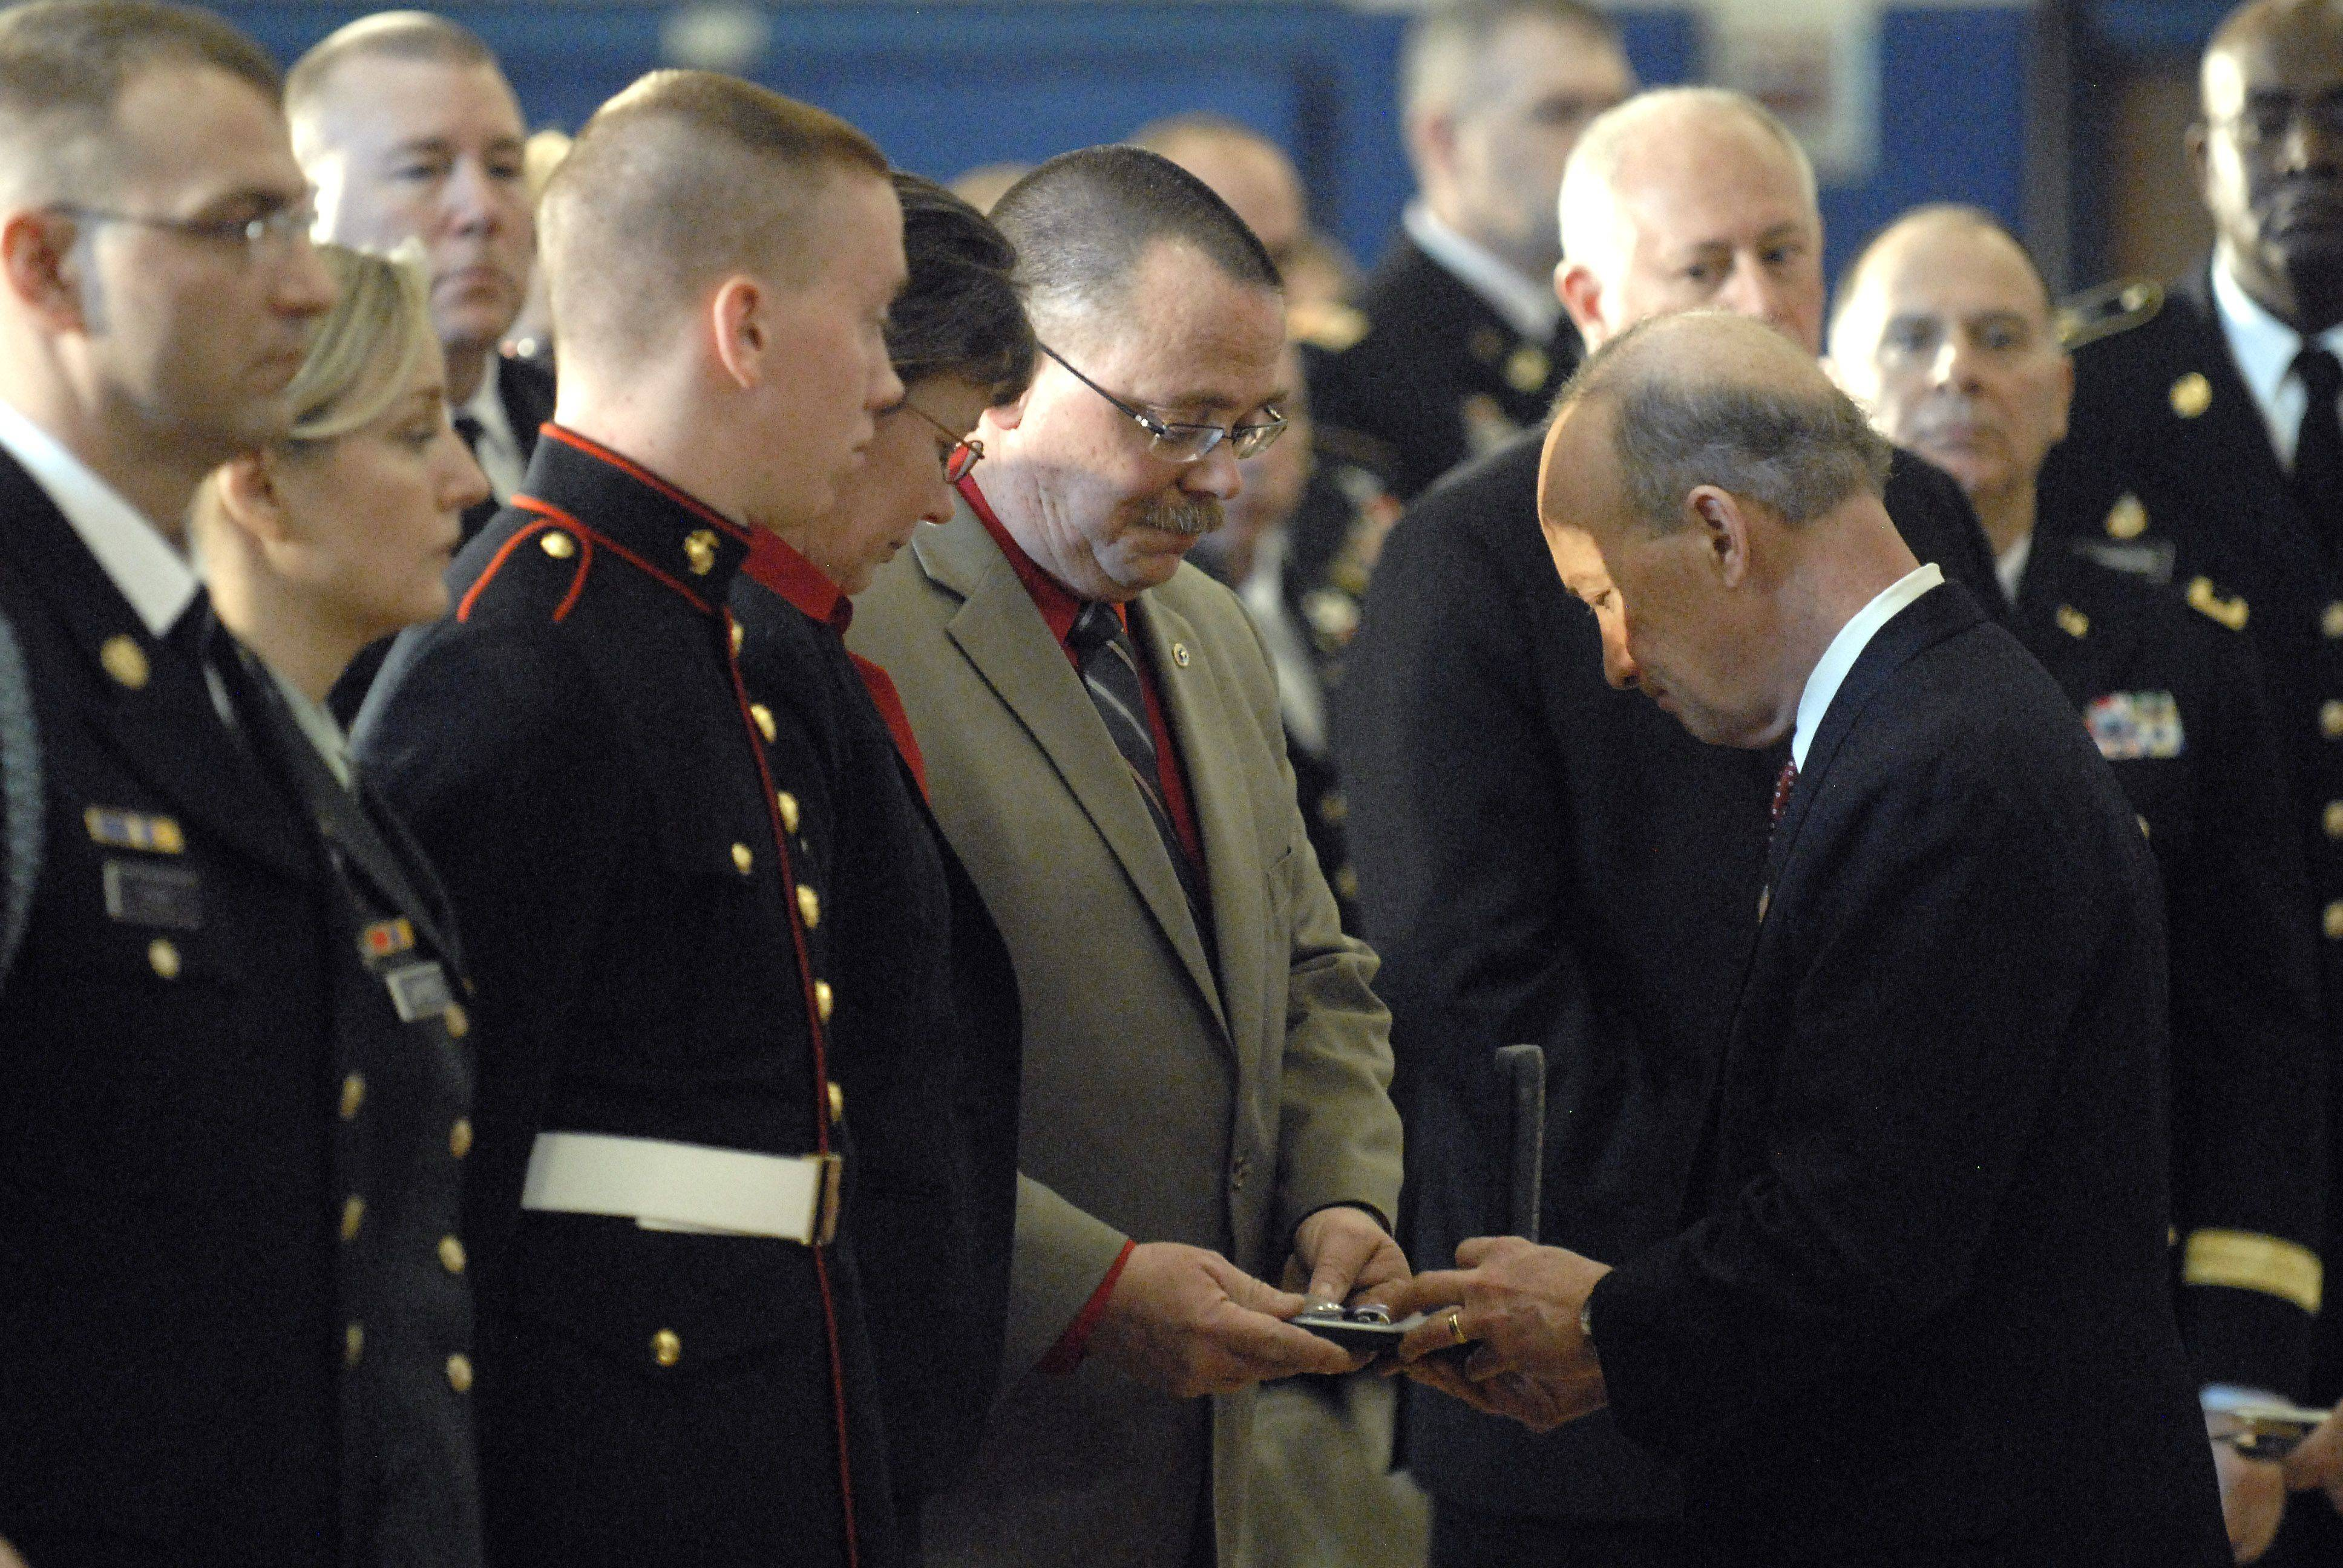 Indiana Governor Mitch Daniels helps in the presentation of medals to Bob and Mary Patterson, parents of Spc. Christopher A. Patterson at his funeral in Batavia. Patterson, a member of the 713th Engineer Company of the Indiana National Guard, was awarded the Purple Heart and Bronze Star.